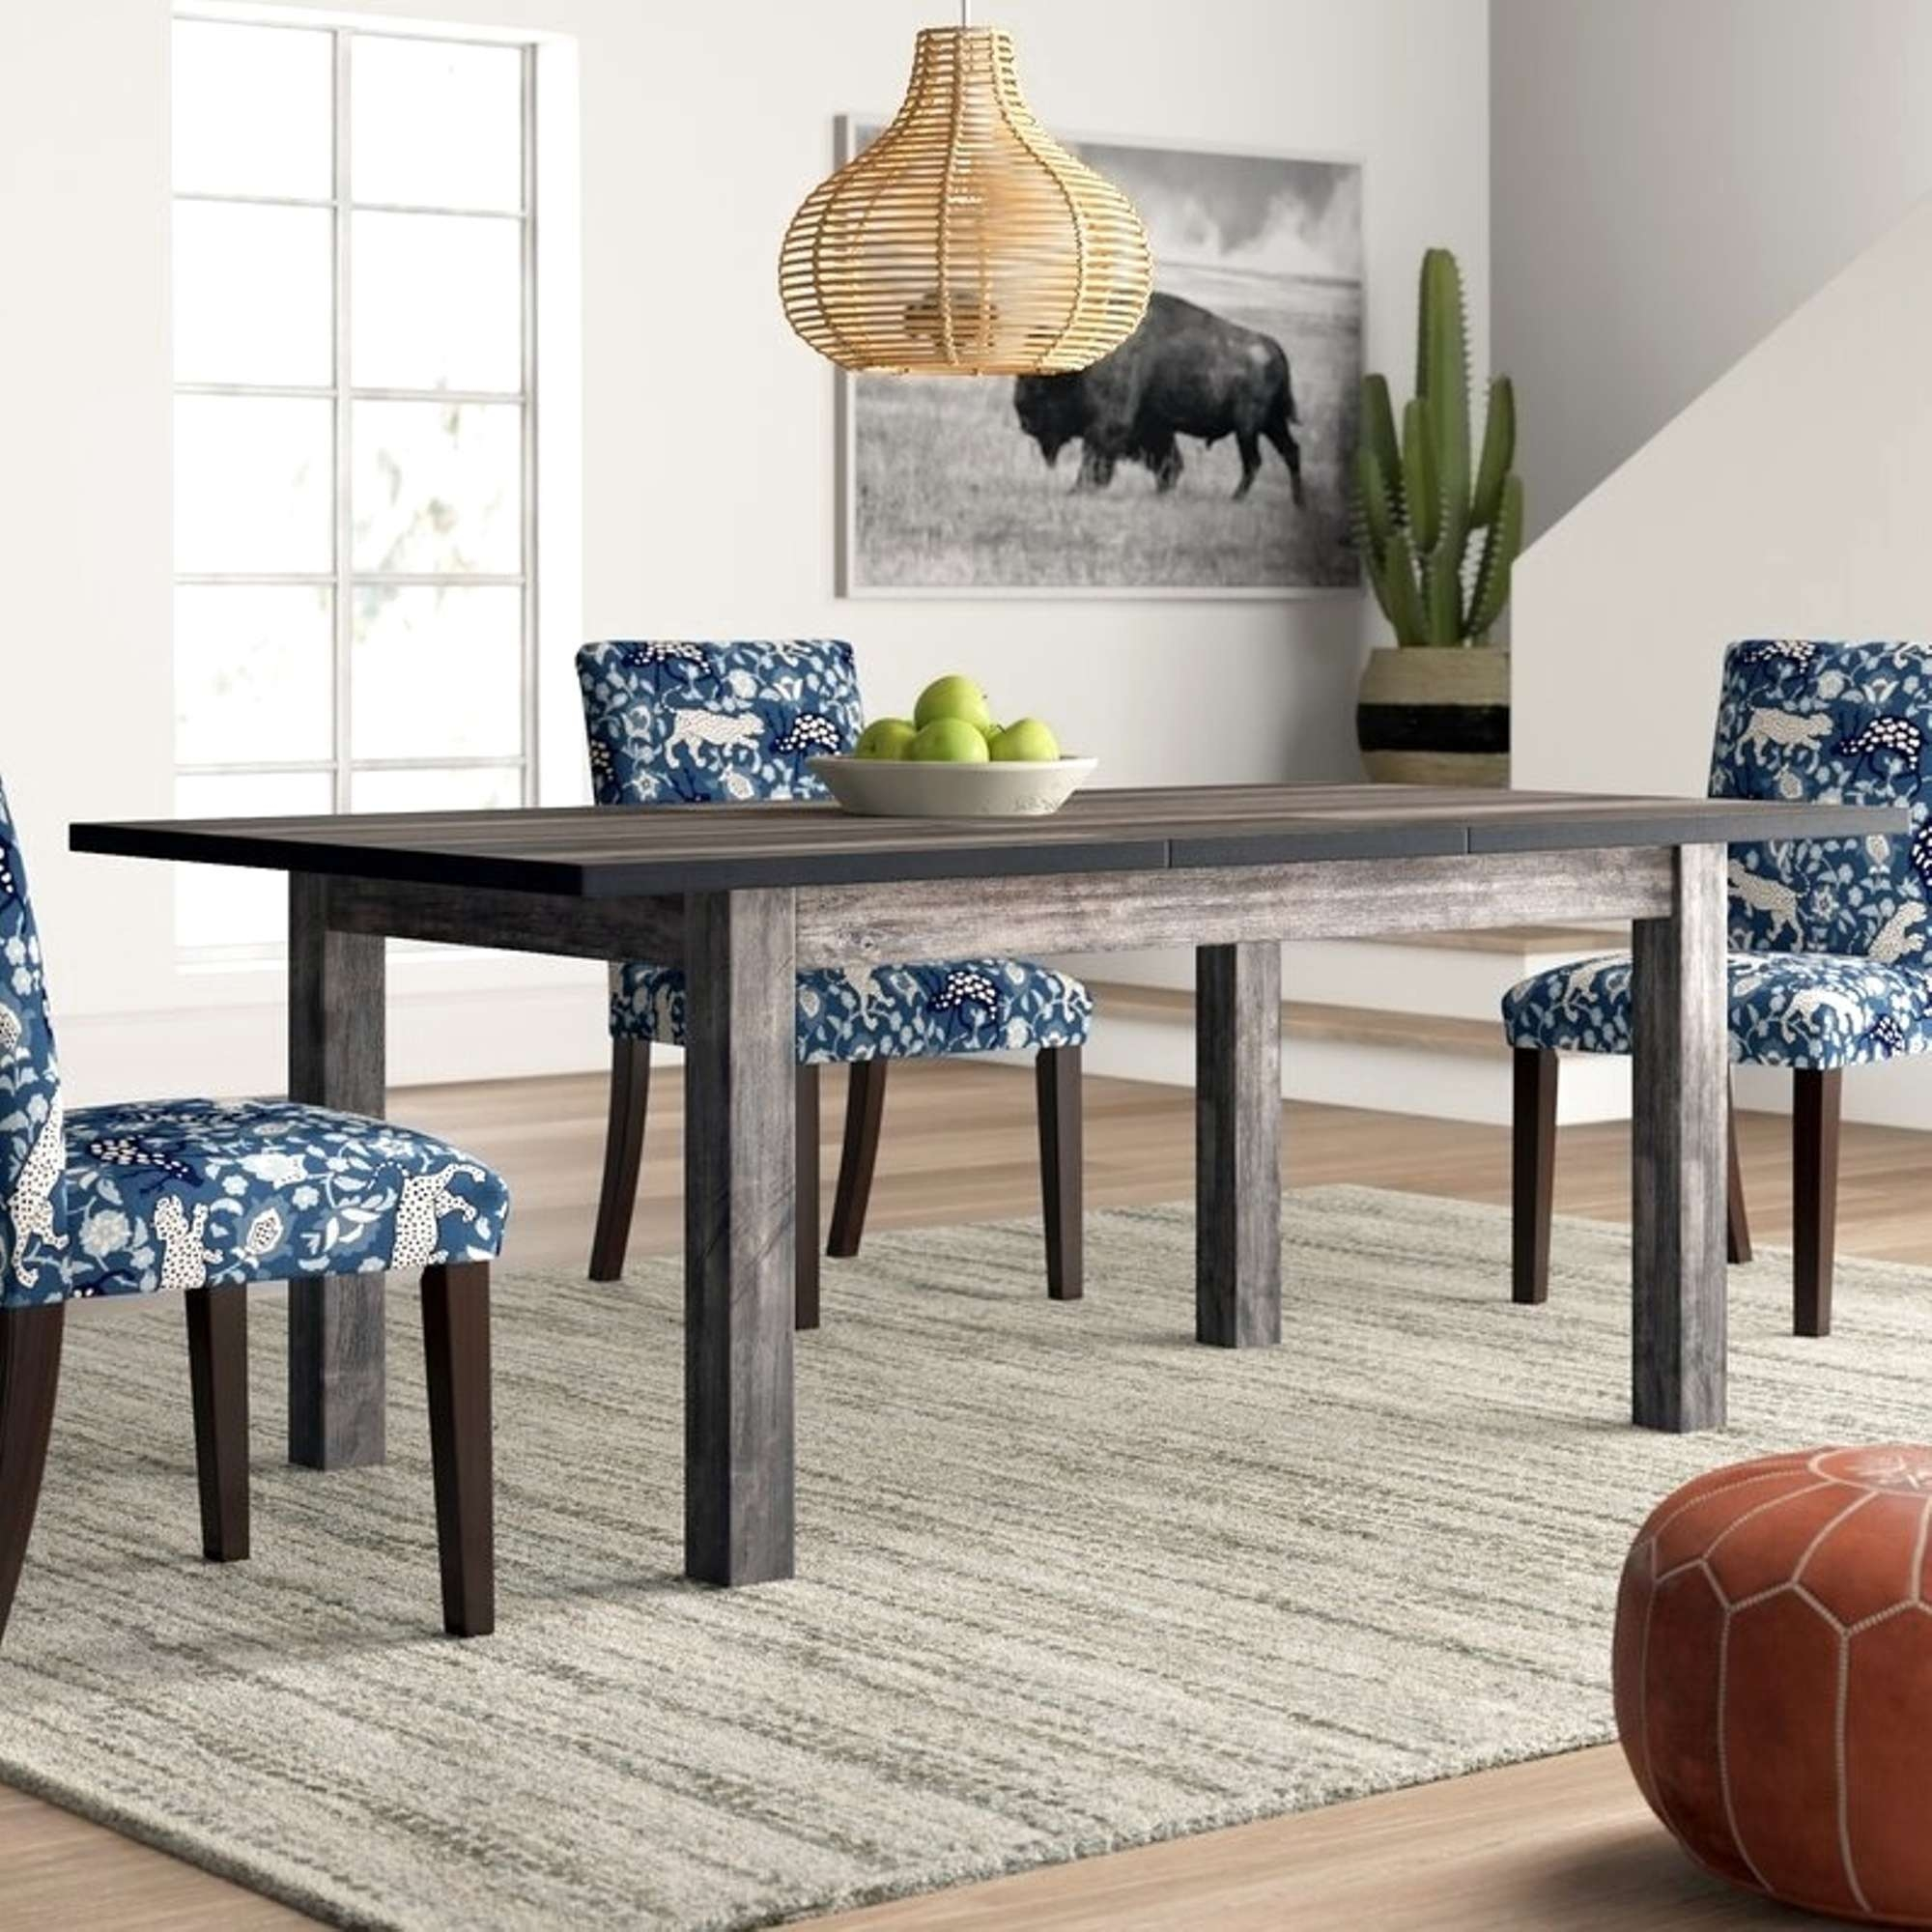 Solid Wood Dining Table Ideas On Foter